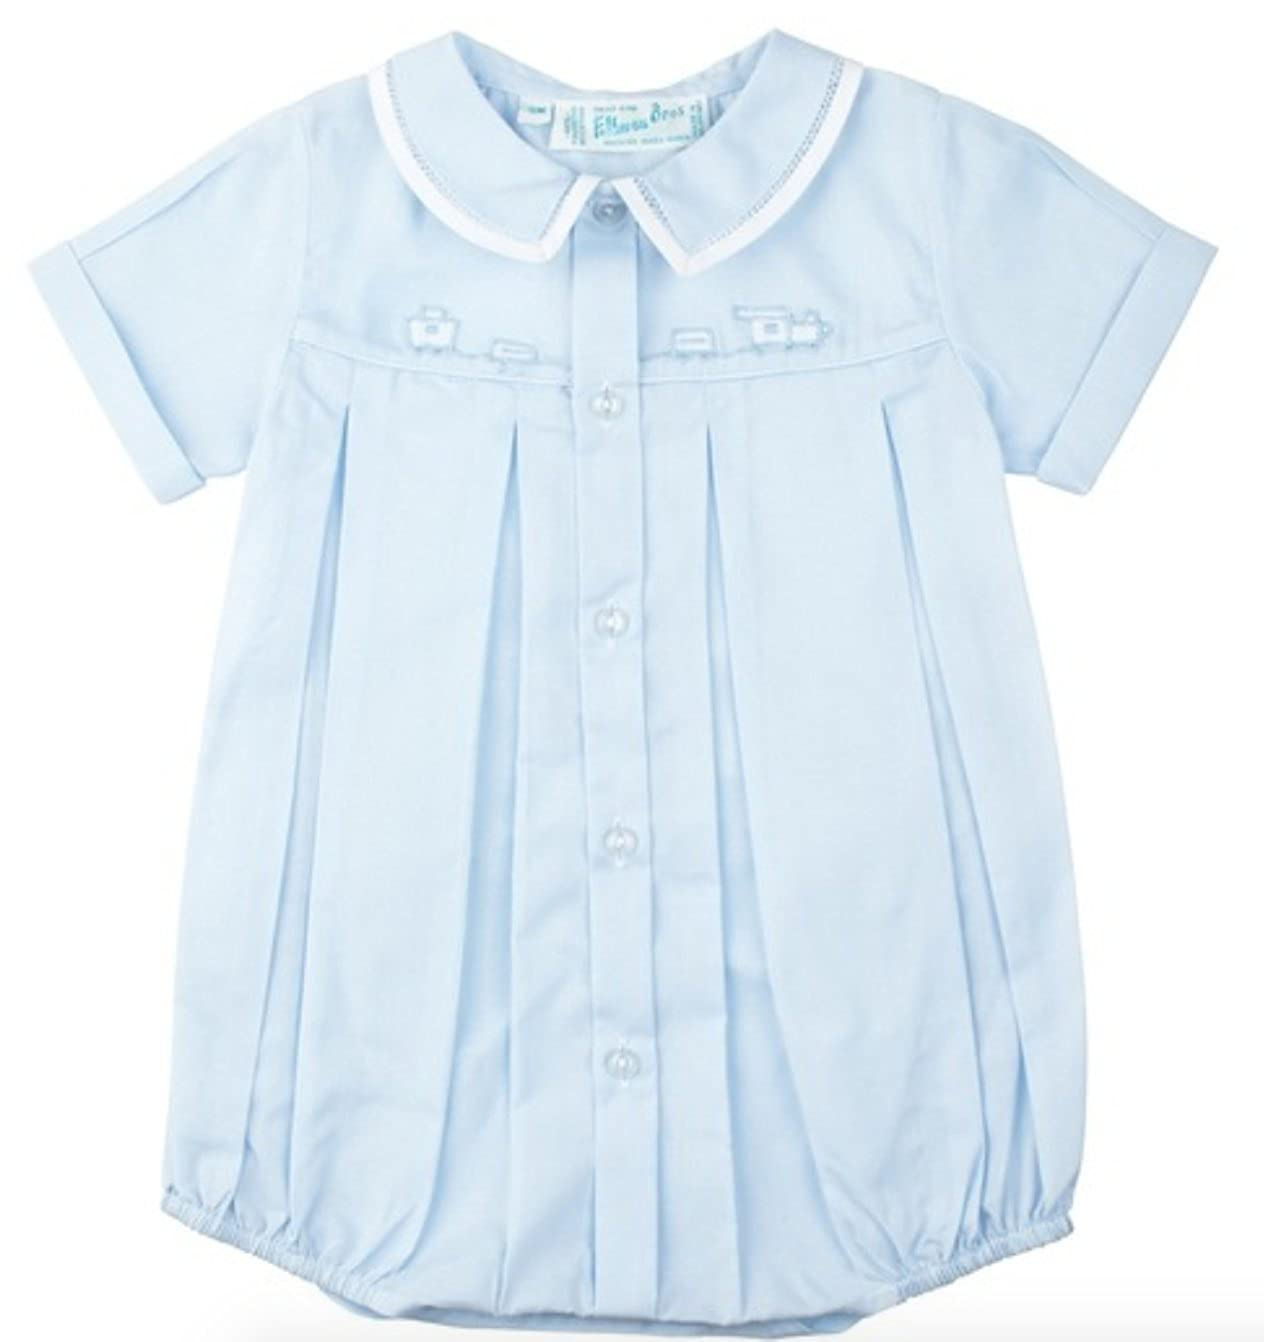 c0b94956f Amazon.com: Feltman Brothers Baby Boys Blue Train Bubble Outfit (9M): Infant  And Toddler Rompers: Clothing